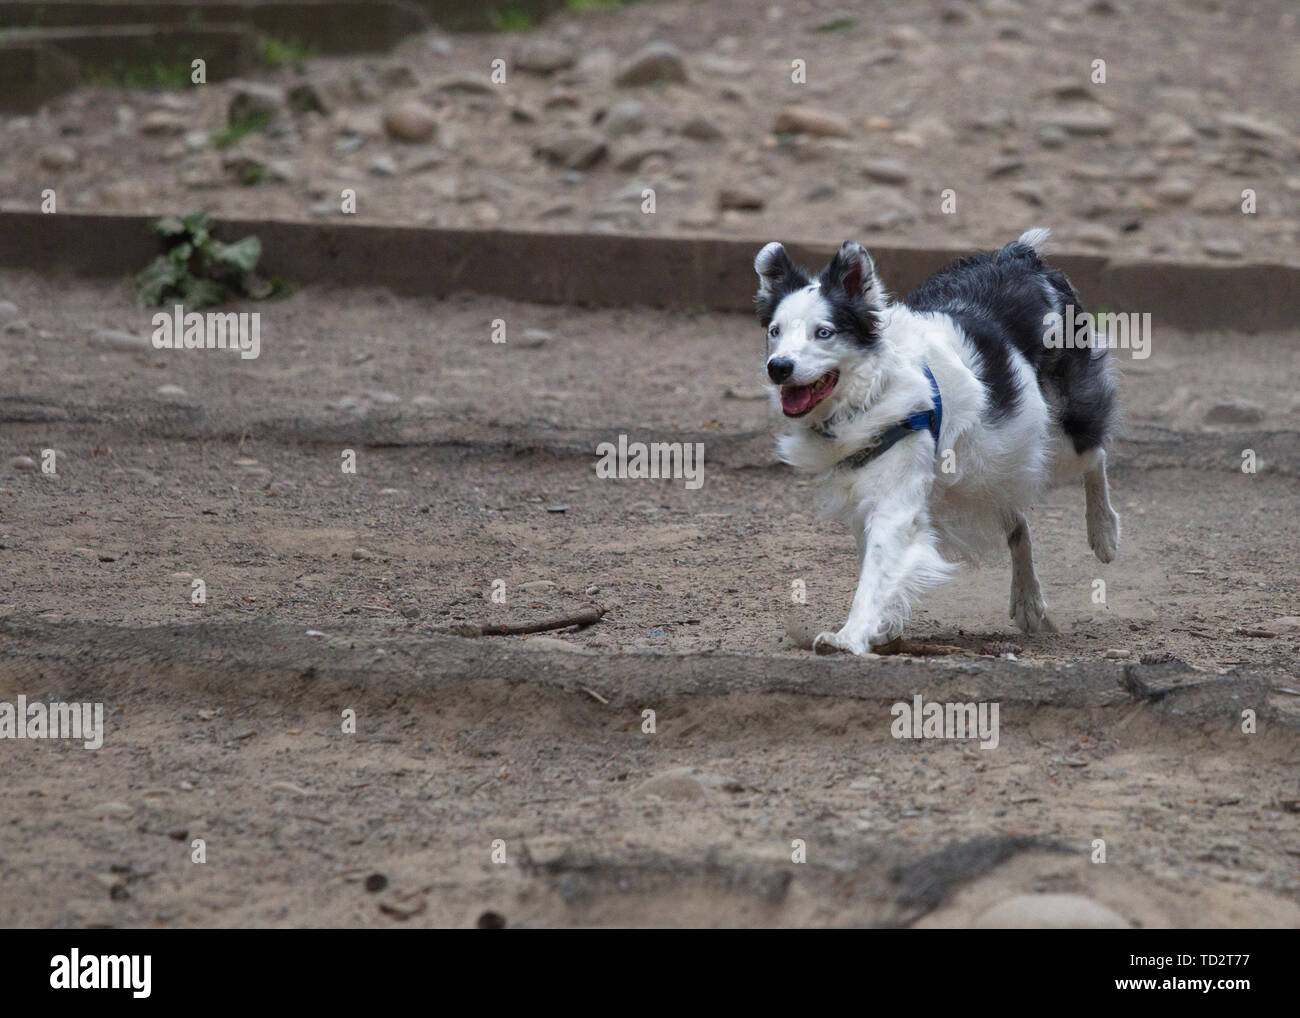 Multiple Types Of Pet Dogs Stock Photo Alamy